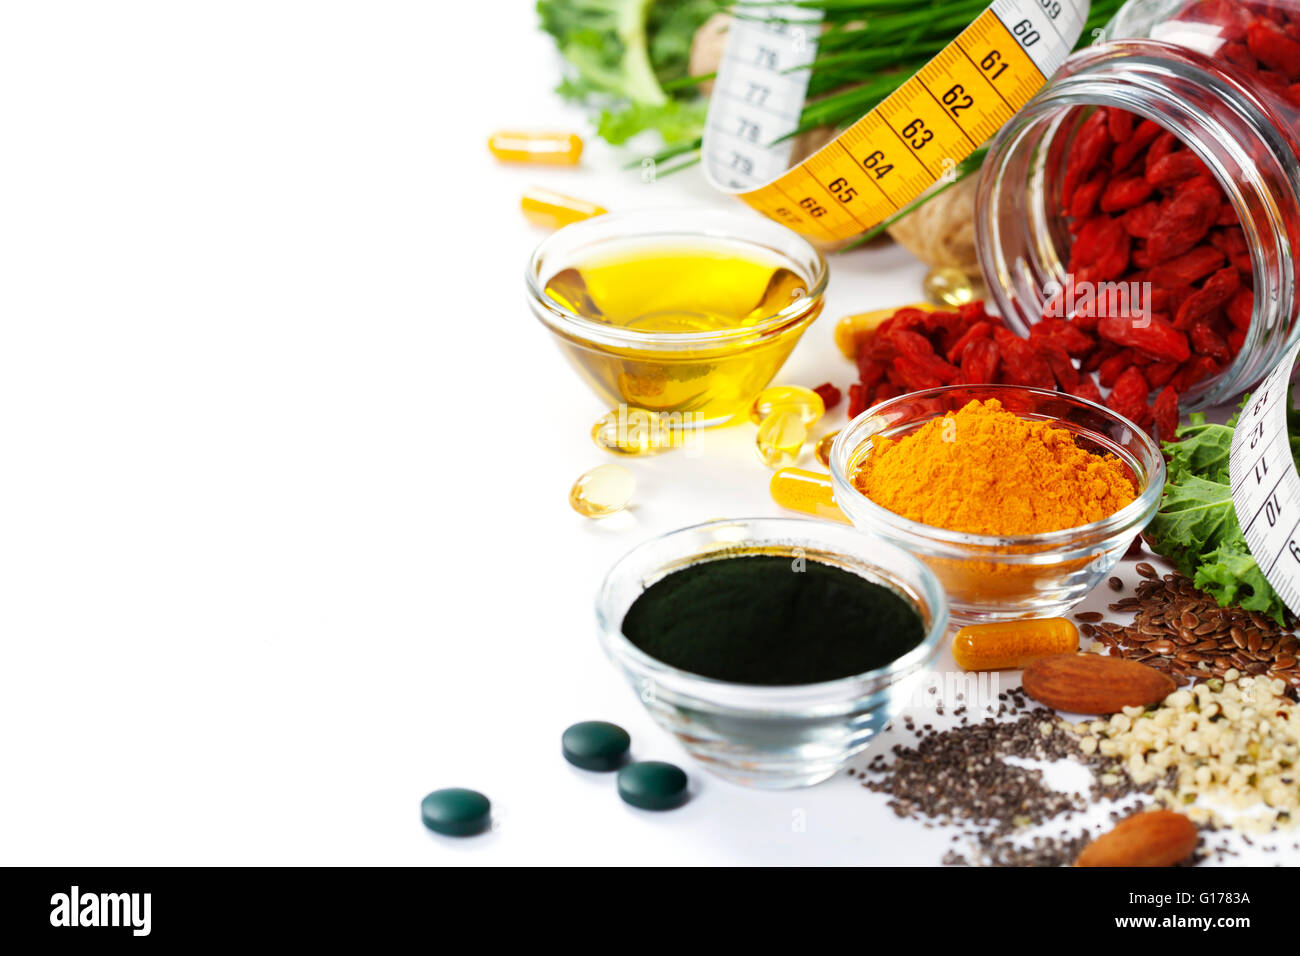 Alternative natural medicine. Dietary supplements. Spirulina, turmeric  and organic oil on white background. Superfood, - Stock Image